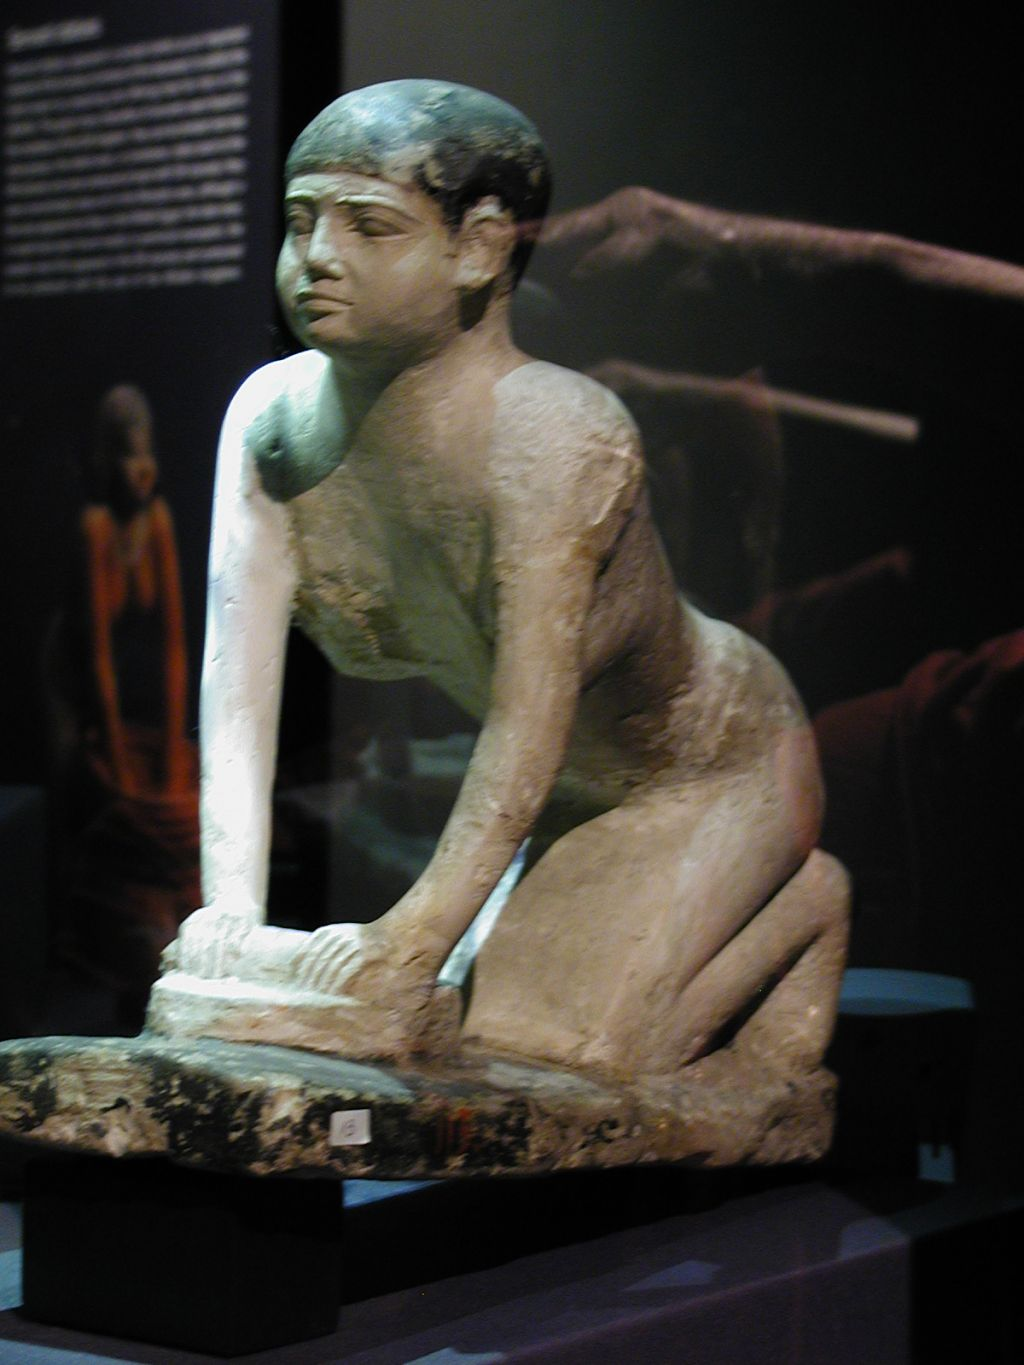 the role of women in ancient egypt Egyptian women were able to pass property down to their daughters why did many deal with long, difficult training to become a scribe it was long and difficult because it was the only way to move up in society.